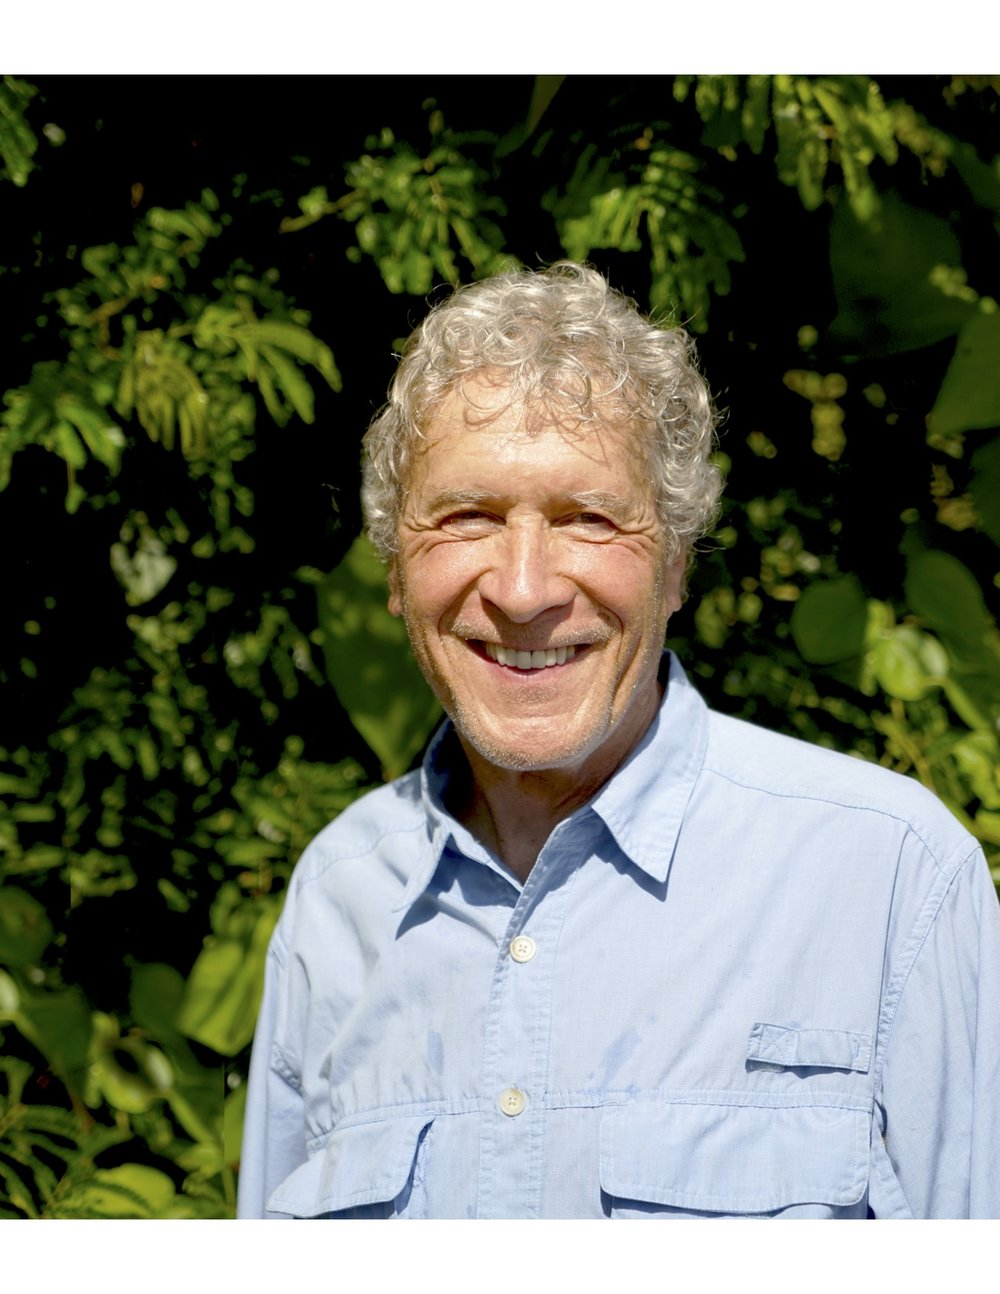 John Perkins, former Chief Economist, has trained with shamans around the world and is co-counder of The Pachamama Alliance and Dream Change. He is the author of many books including his latest, The New Confessions of an Economic Hit Man.